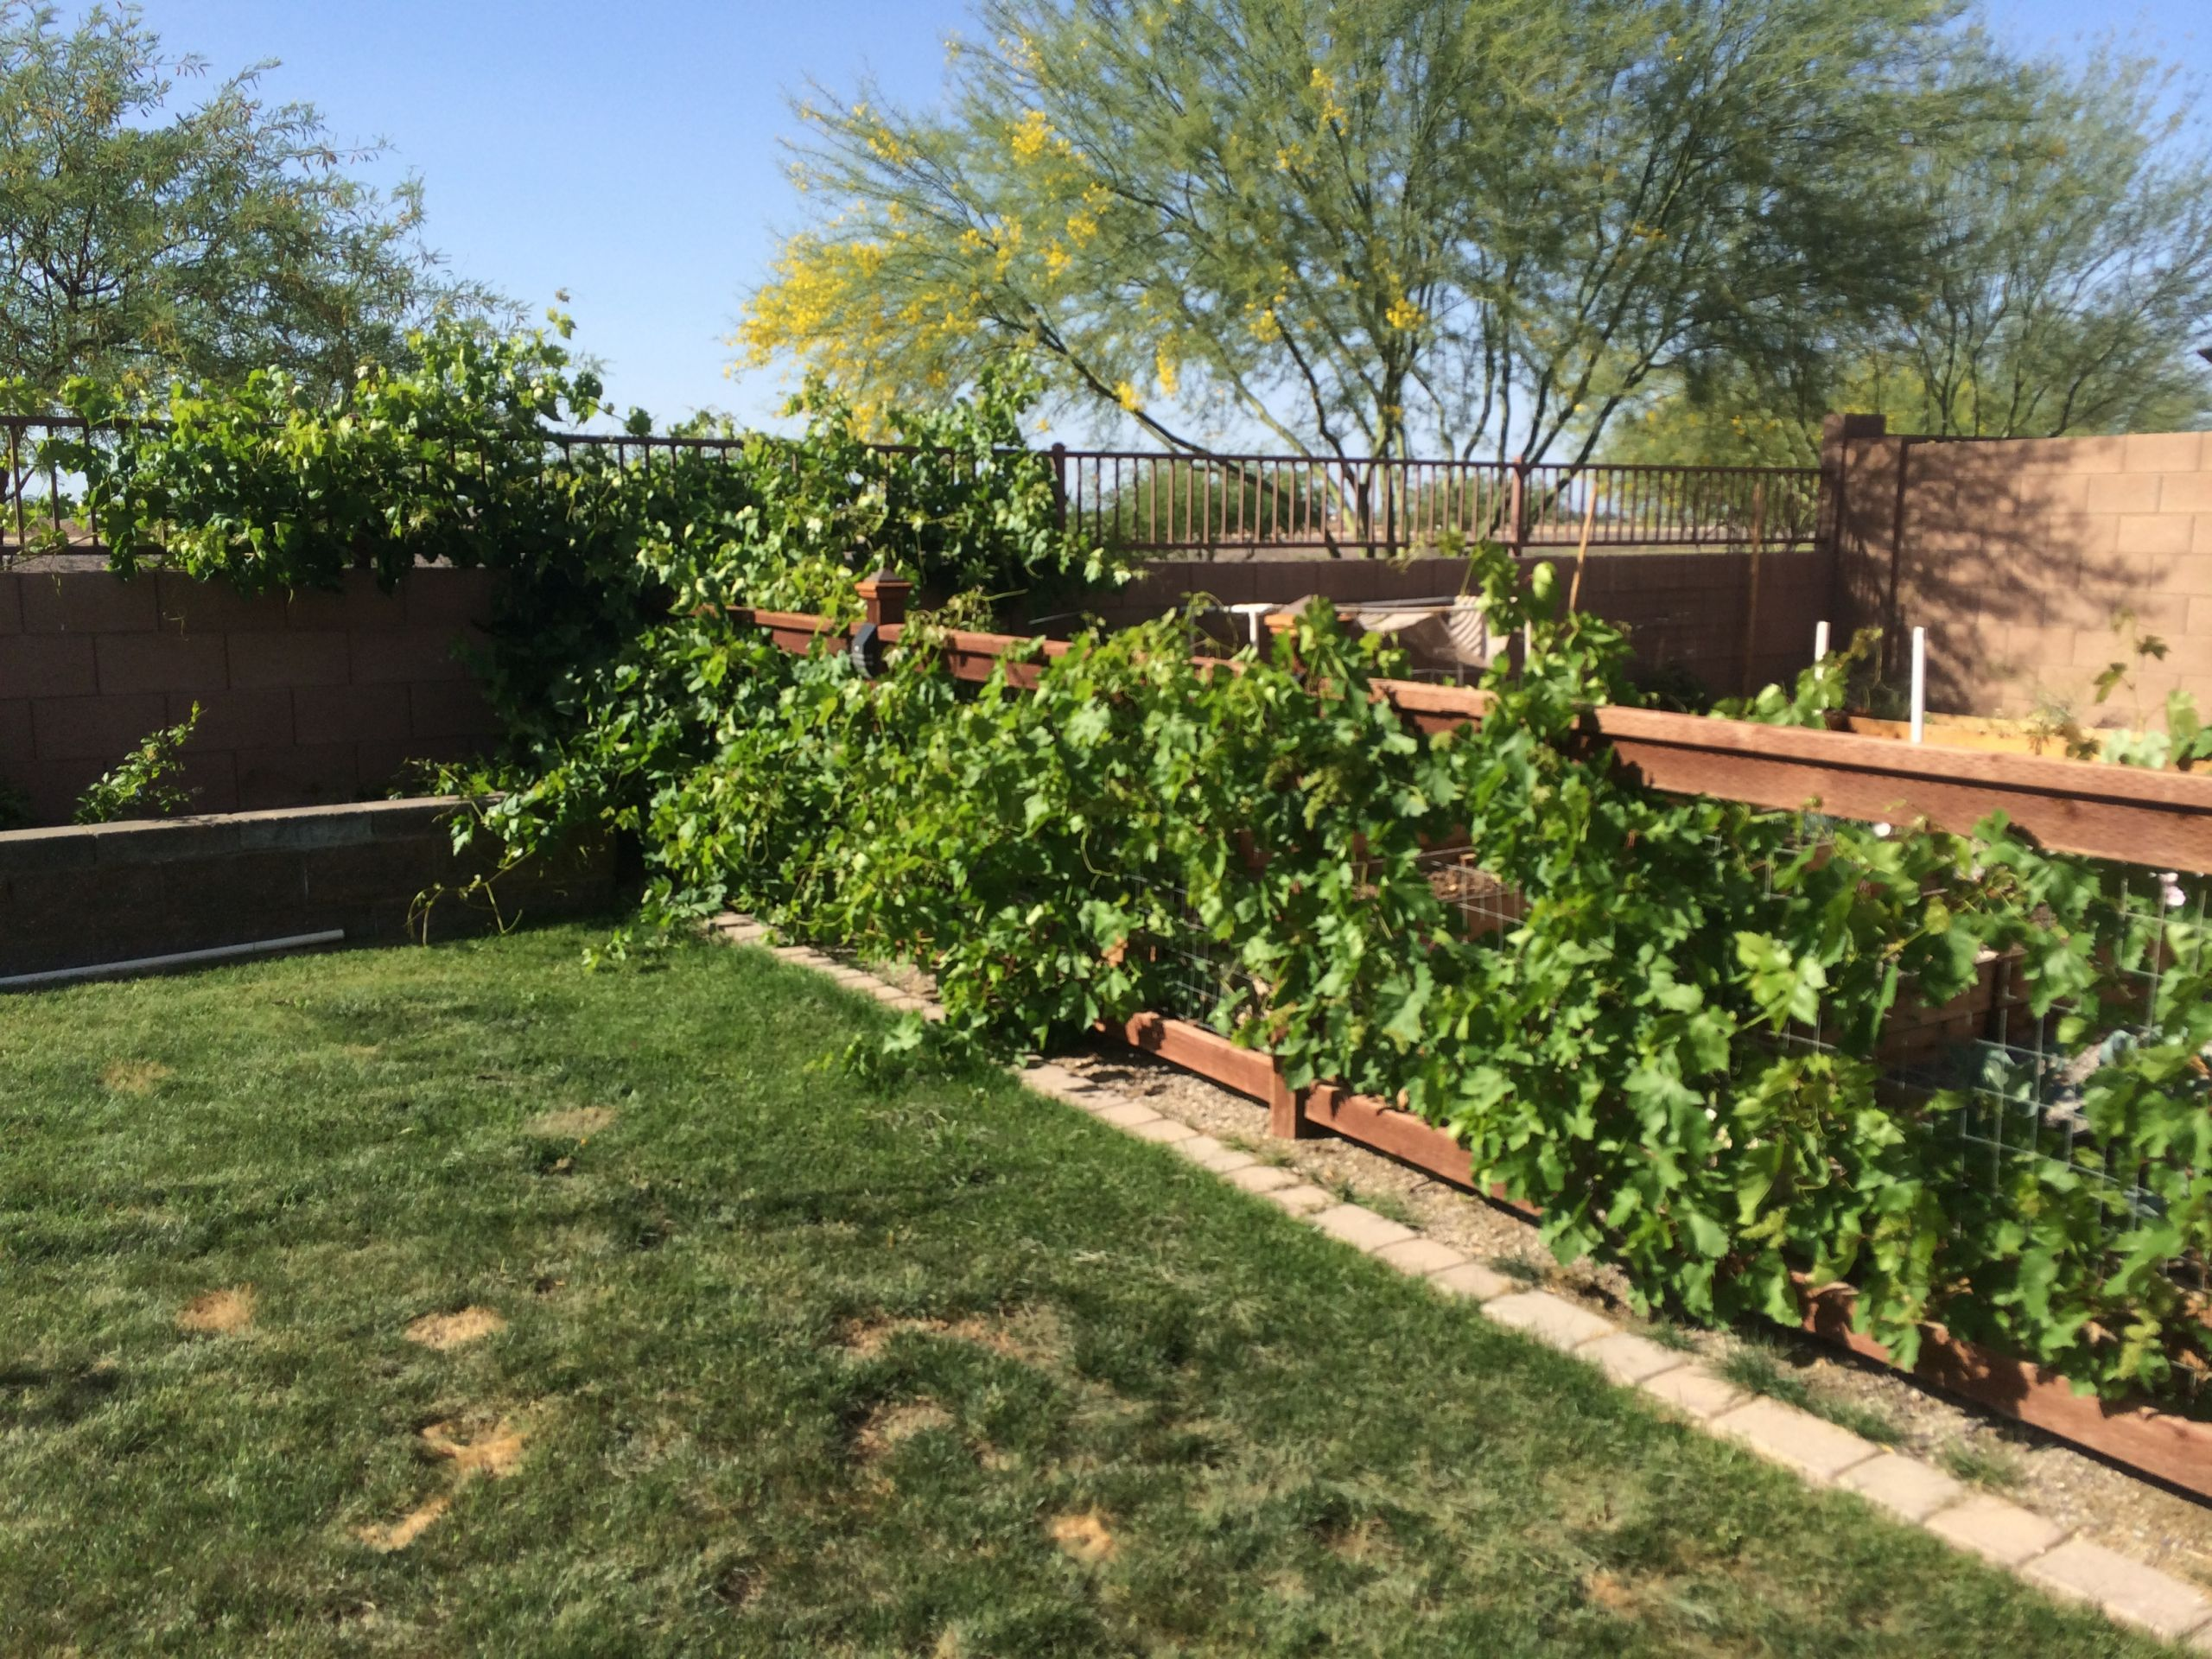 Growing Grapes In Backyard  Five Tips for Growing Grapes in Phoenix